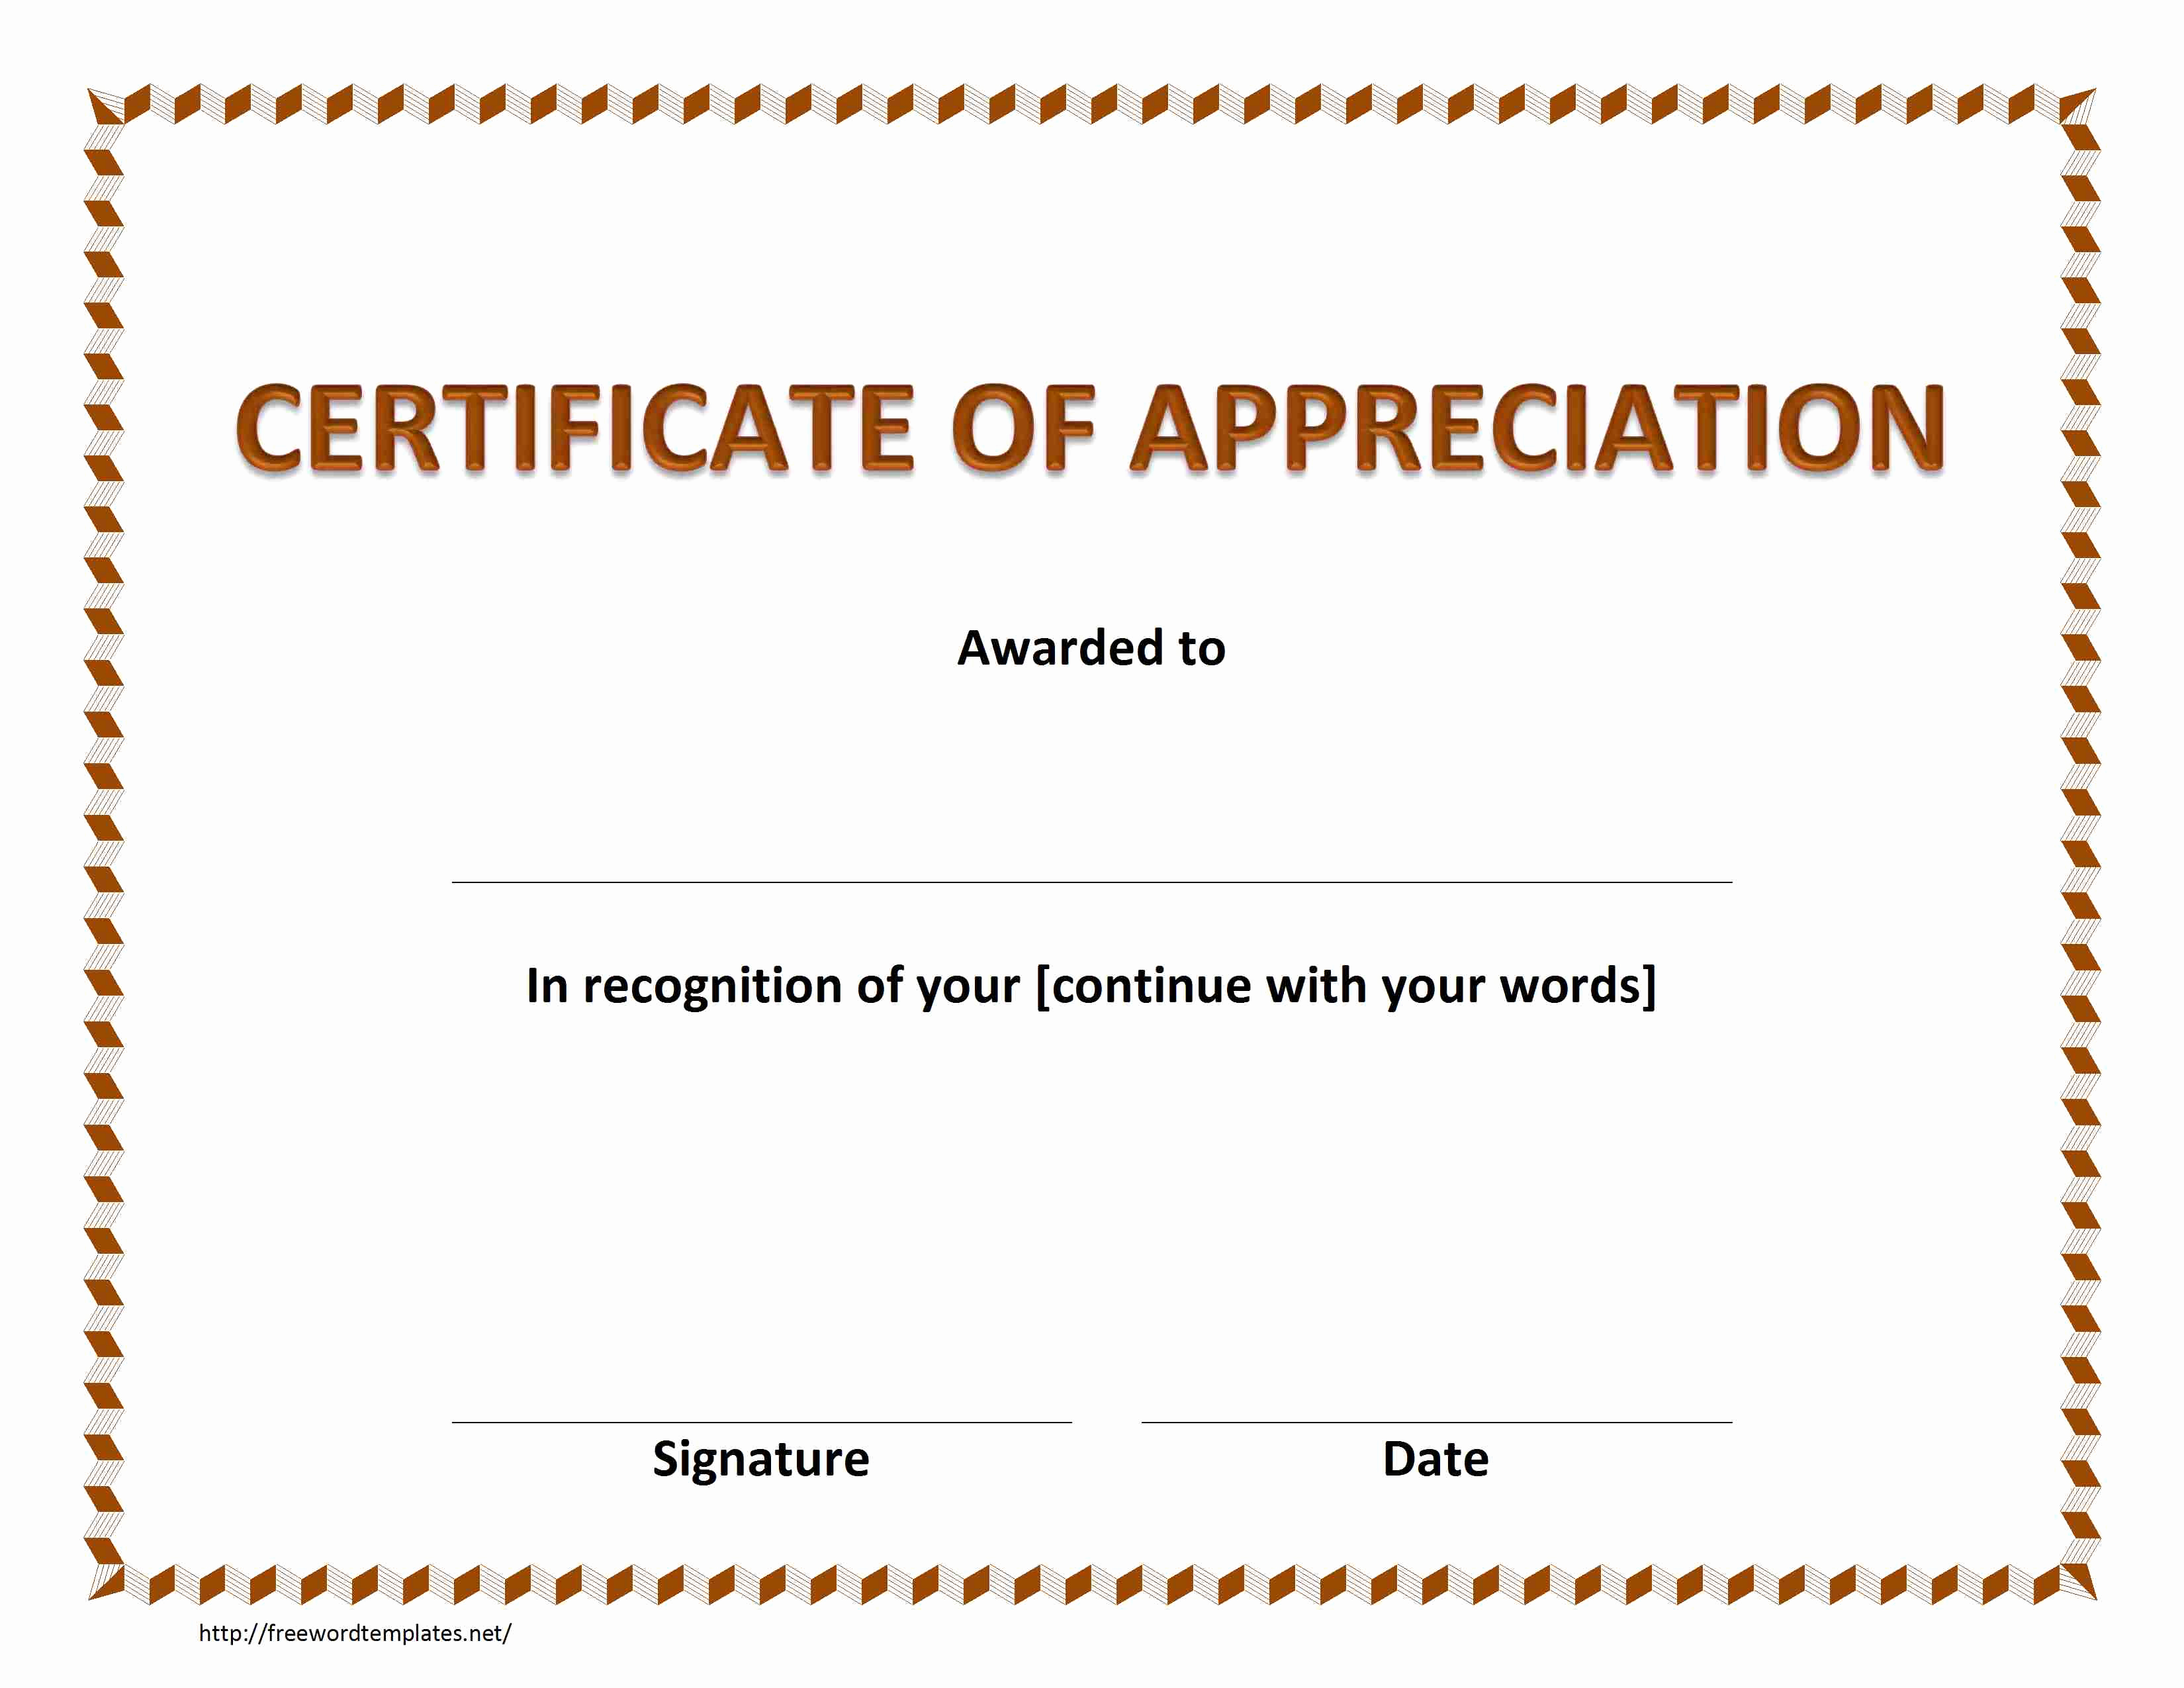 Certificate Of Appreciation Template Word Beautiful Certificate Of Appreciation